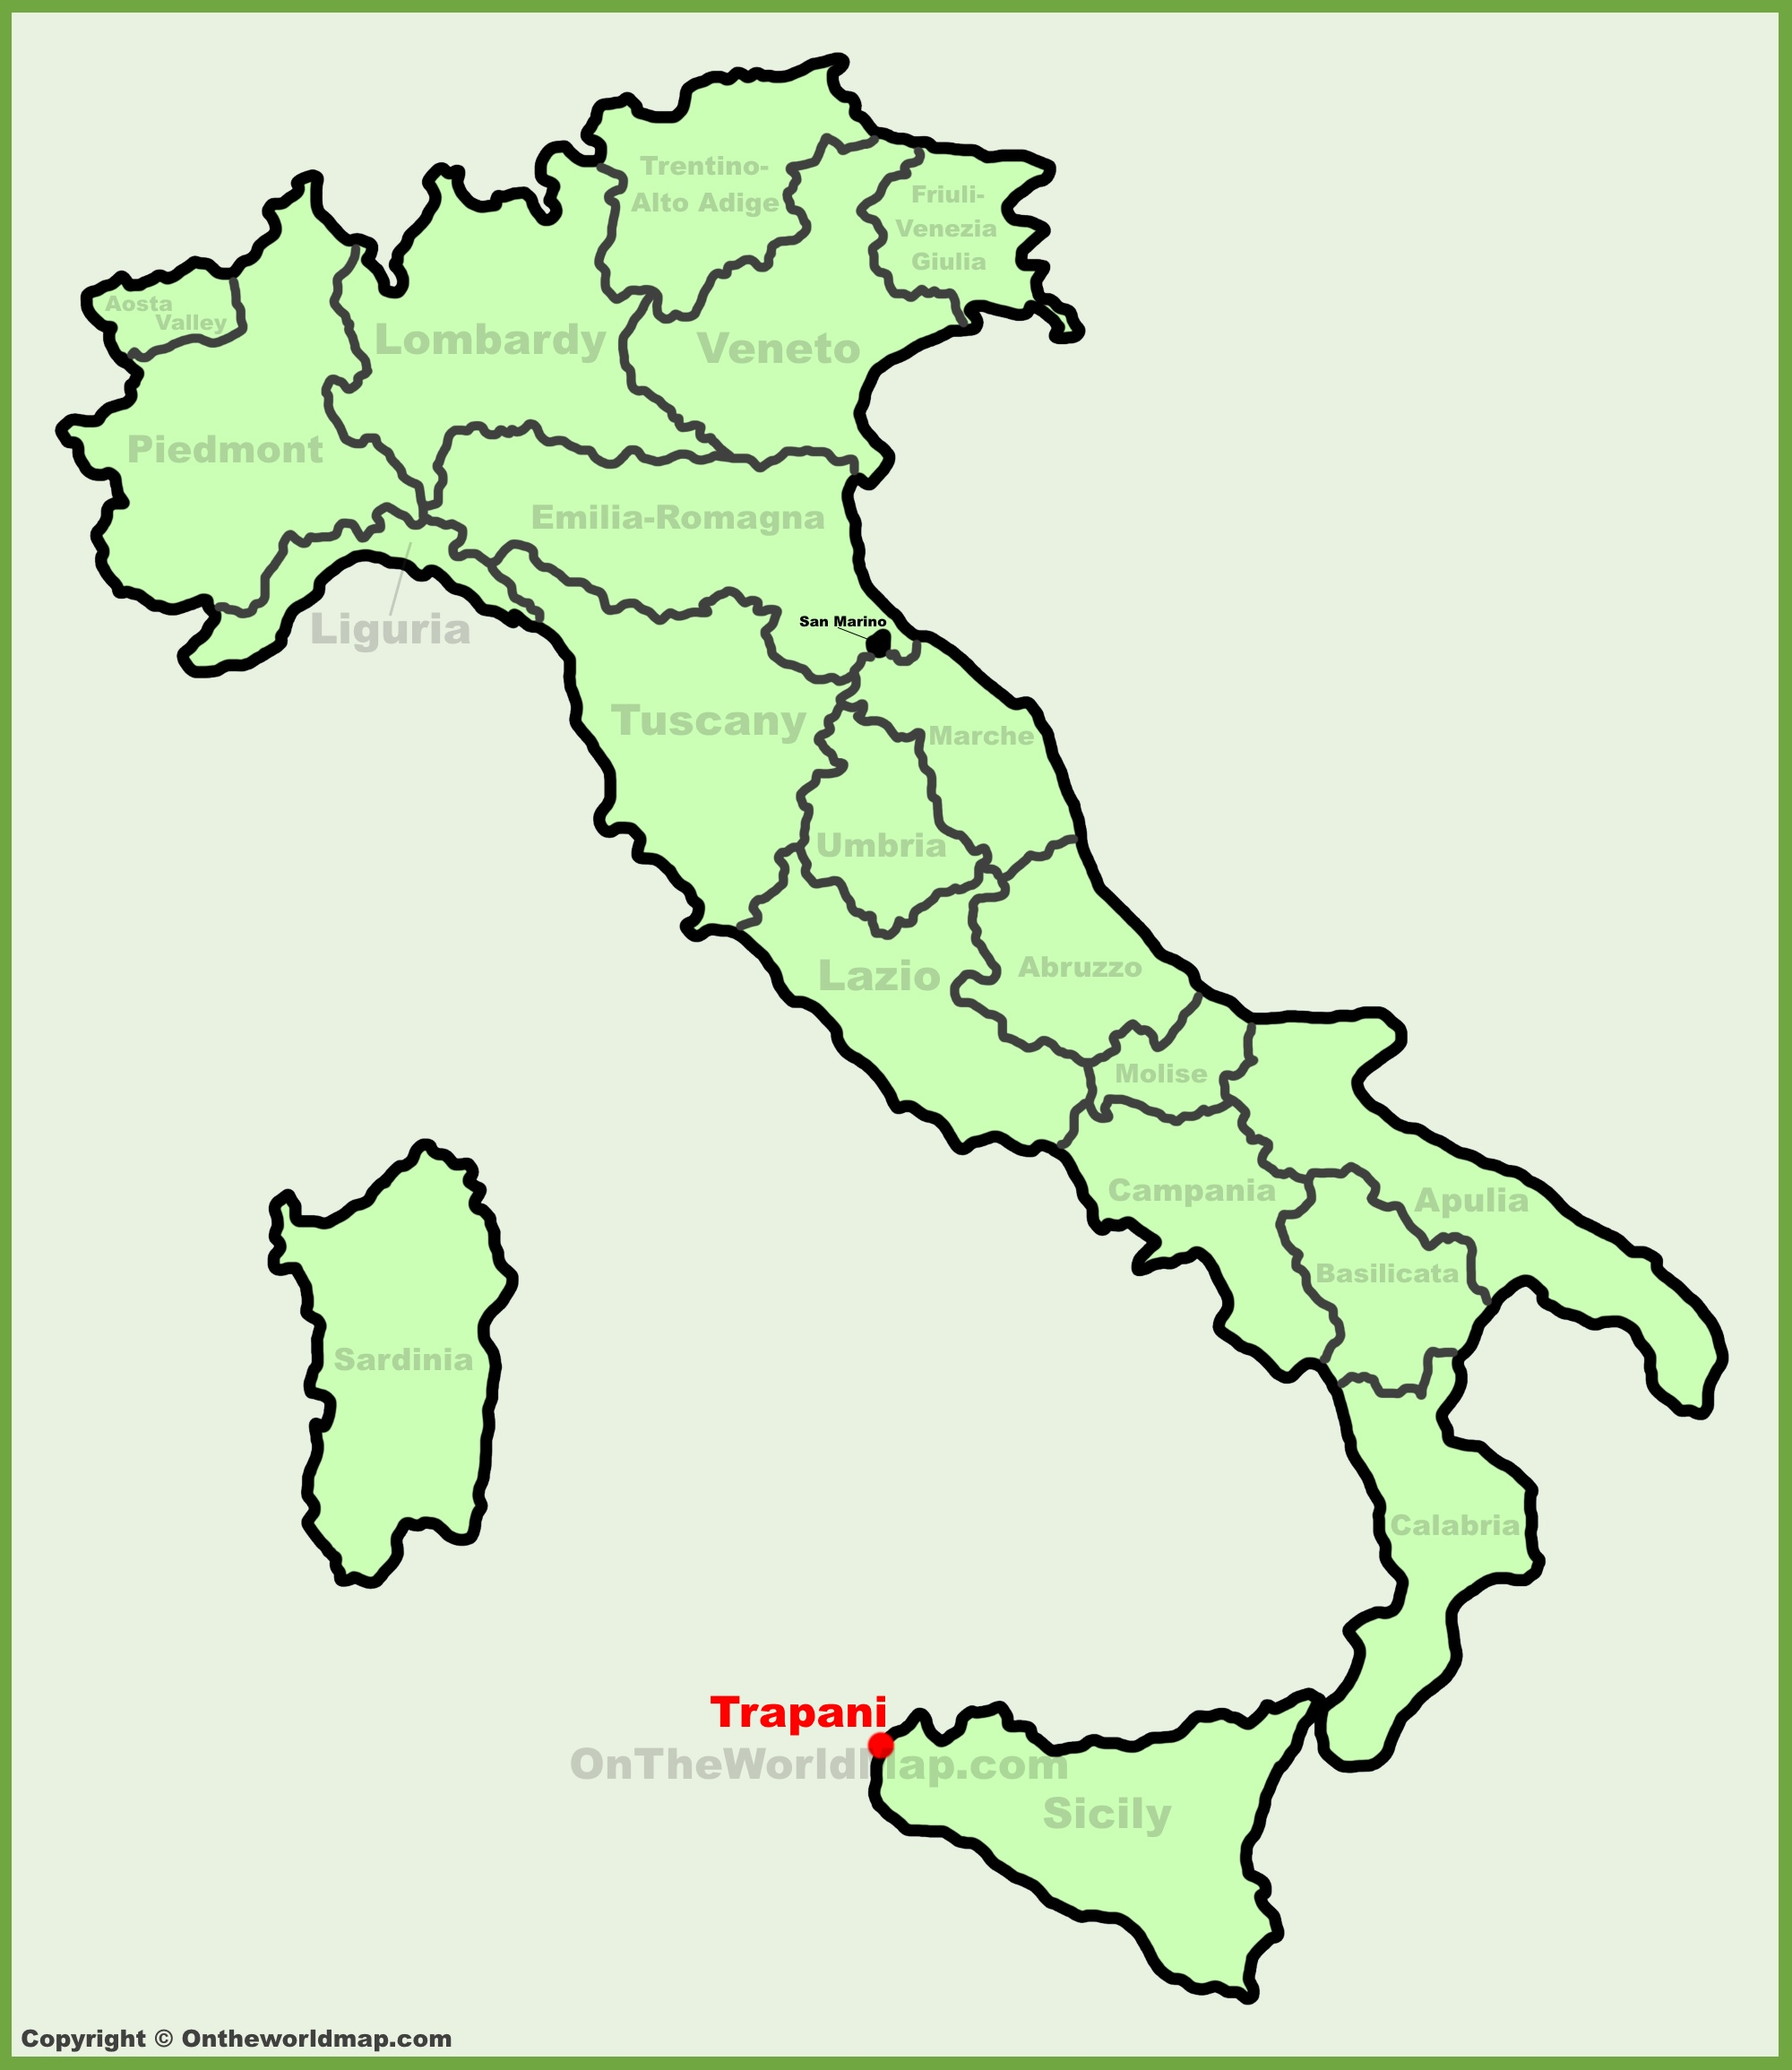 Trapani location on the Italy map